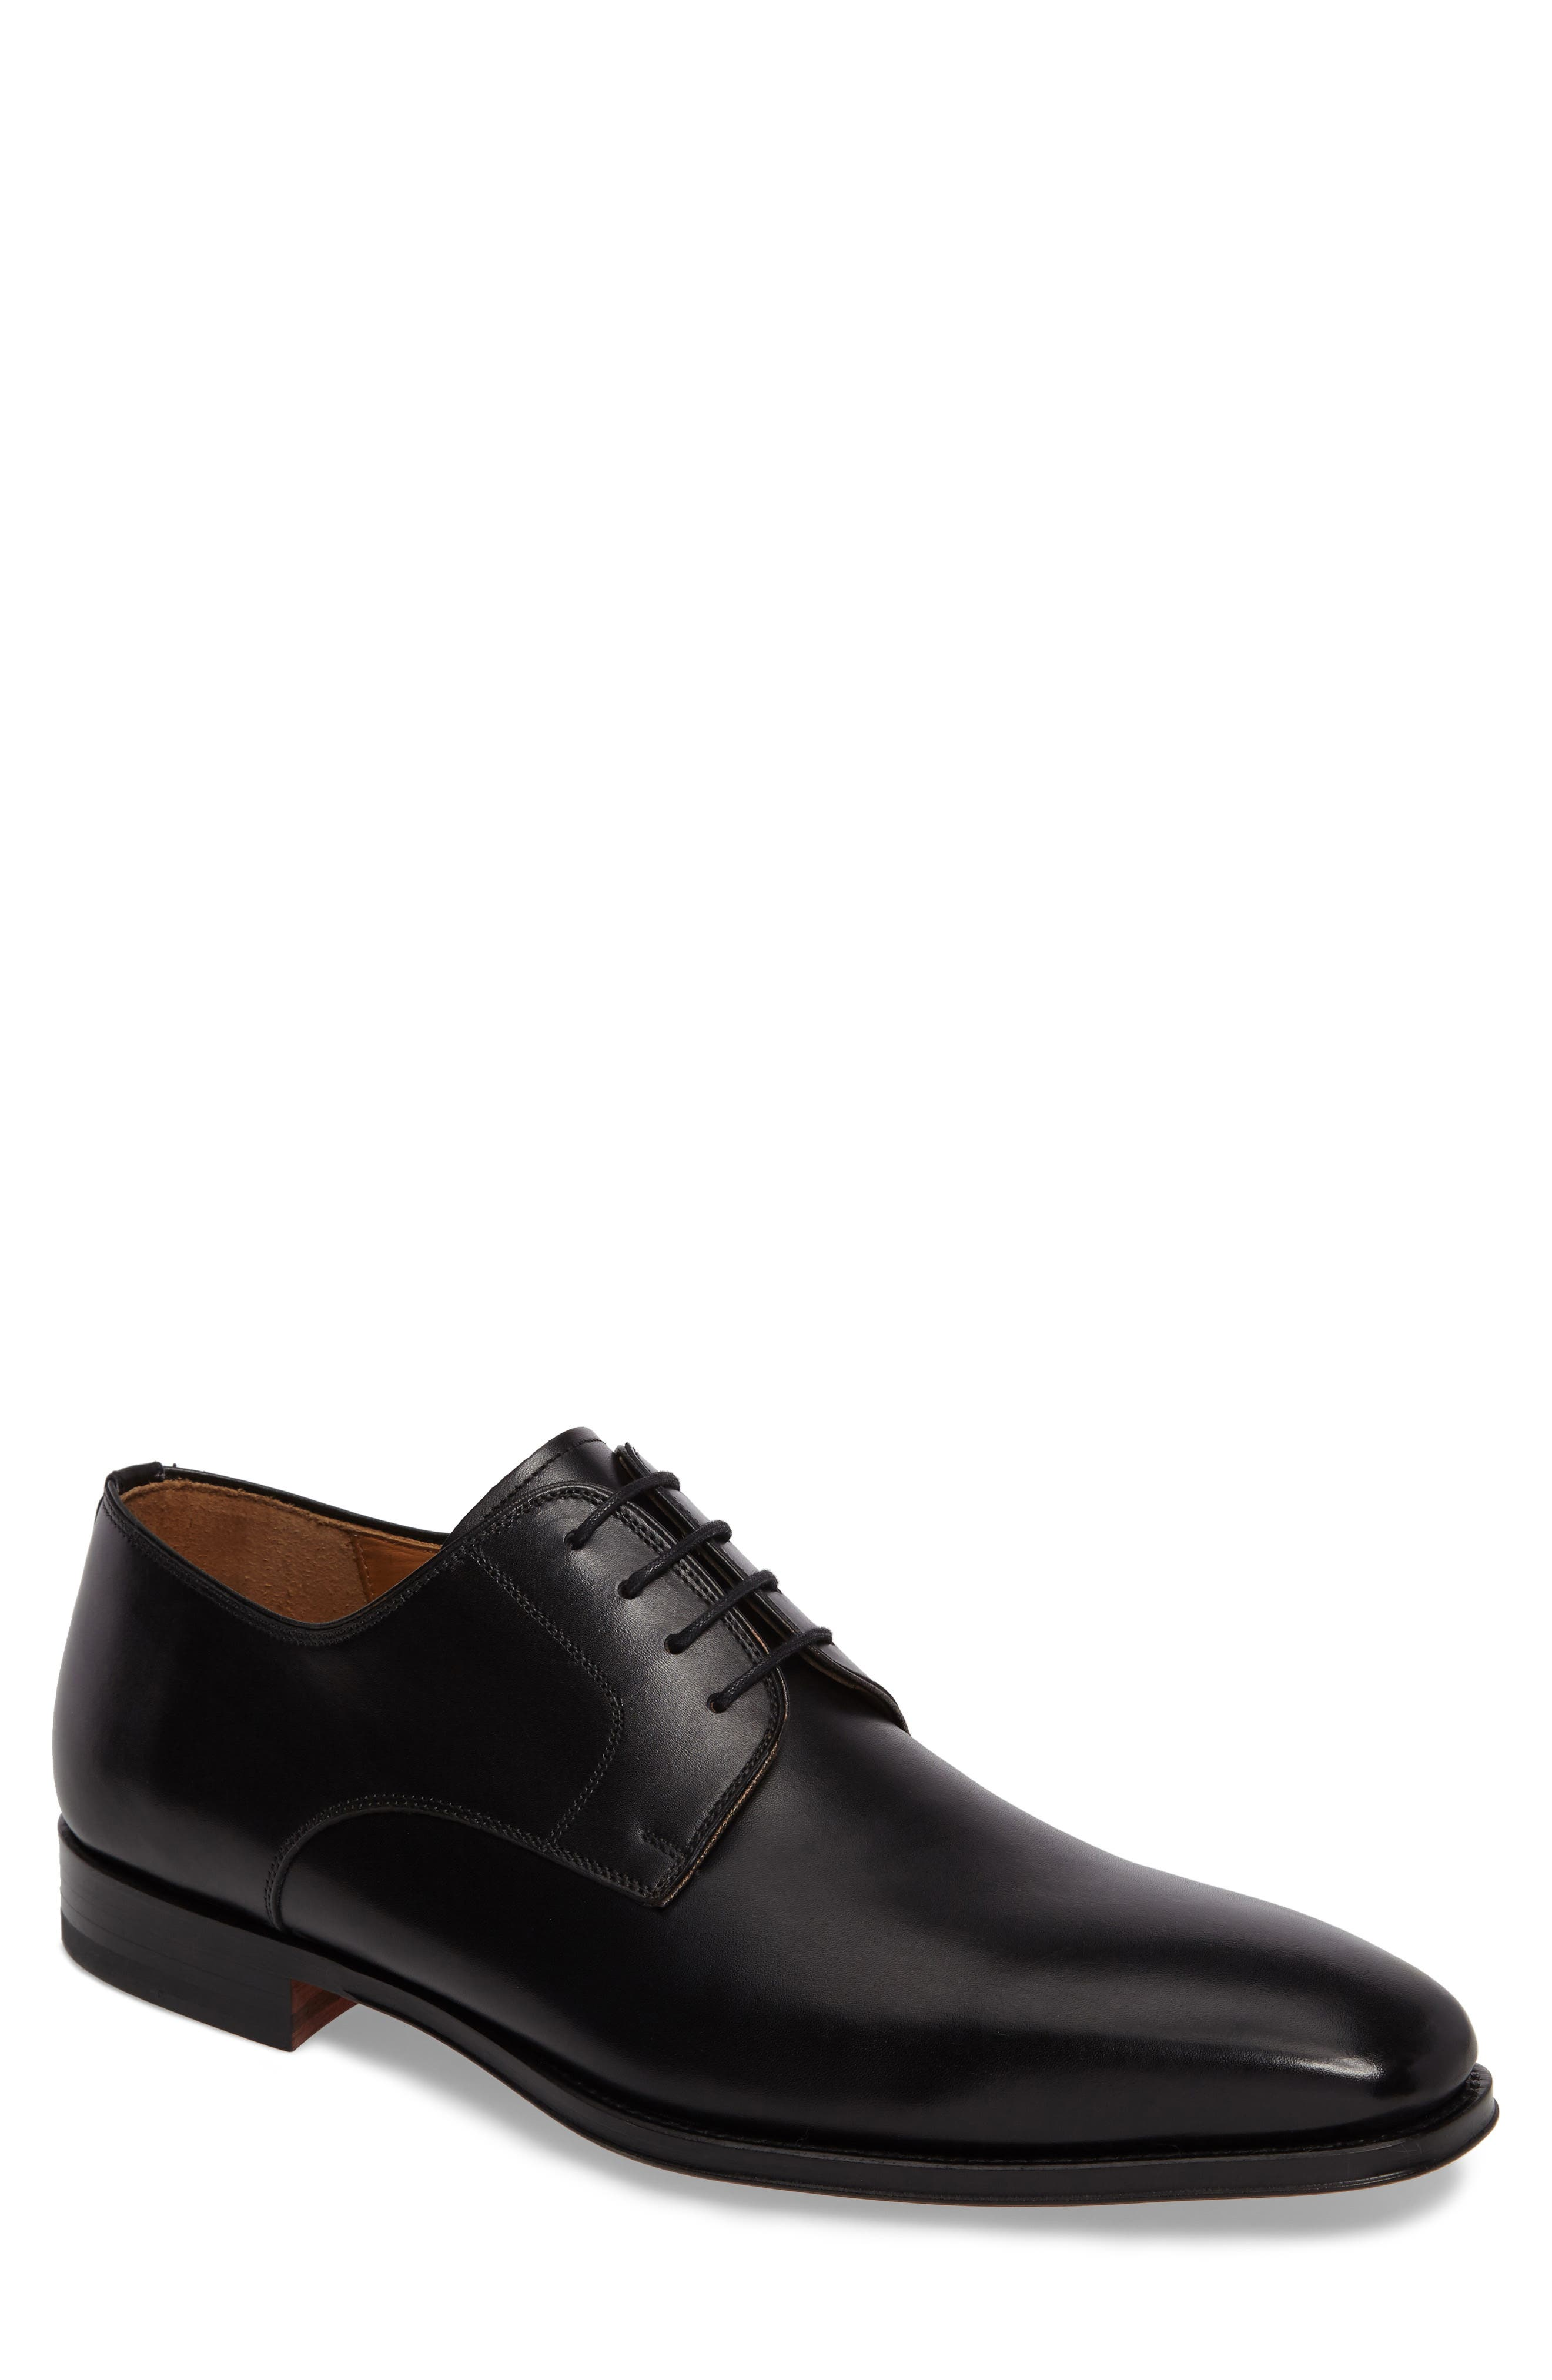 Alternate Image 1 Selected - Magnanni 'Colo' Plain Toe Derby (Men)